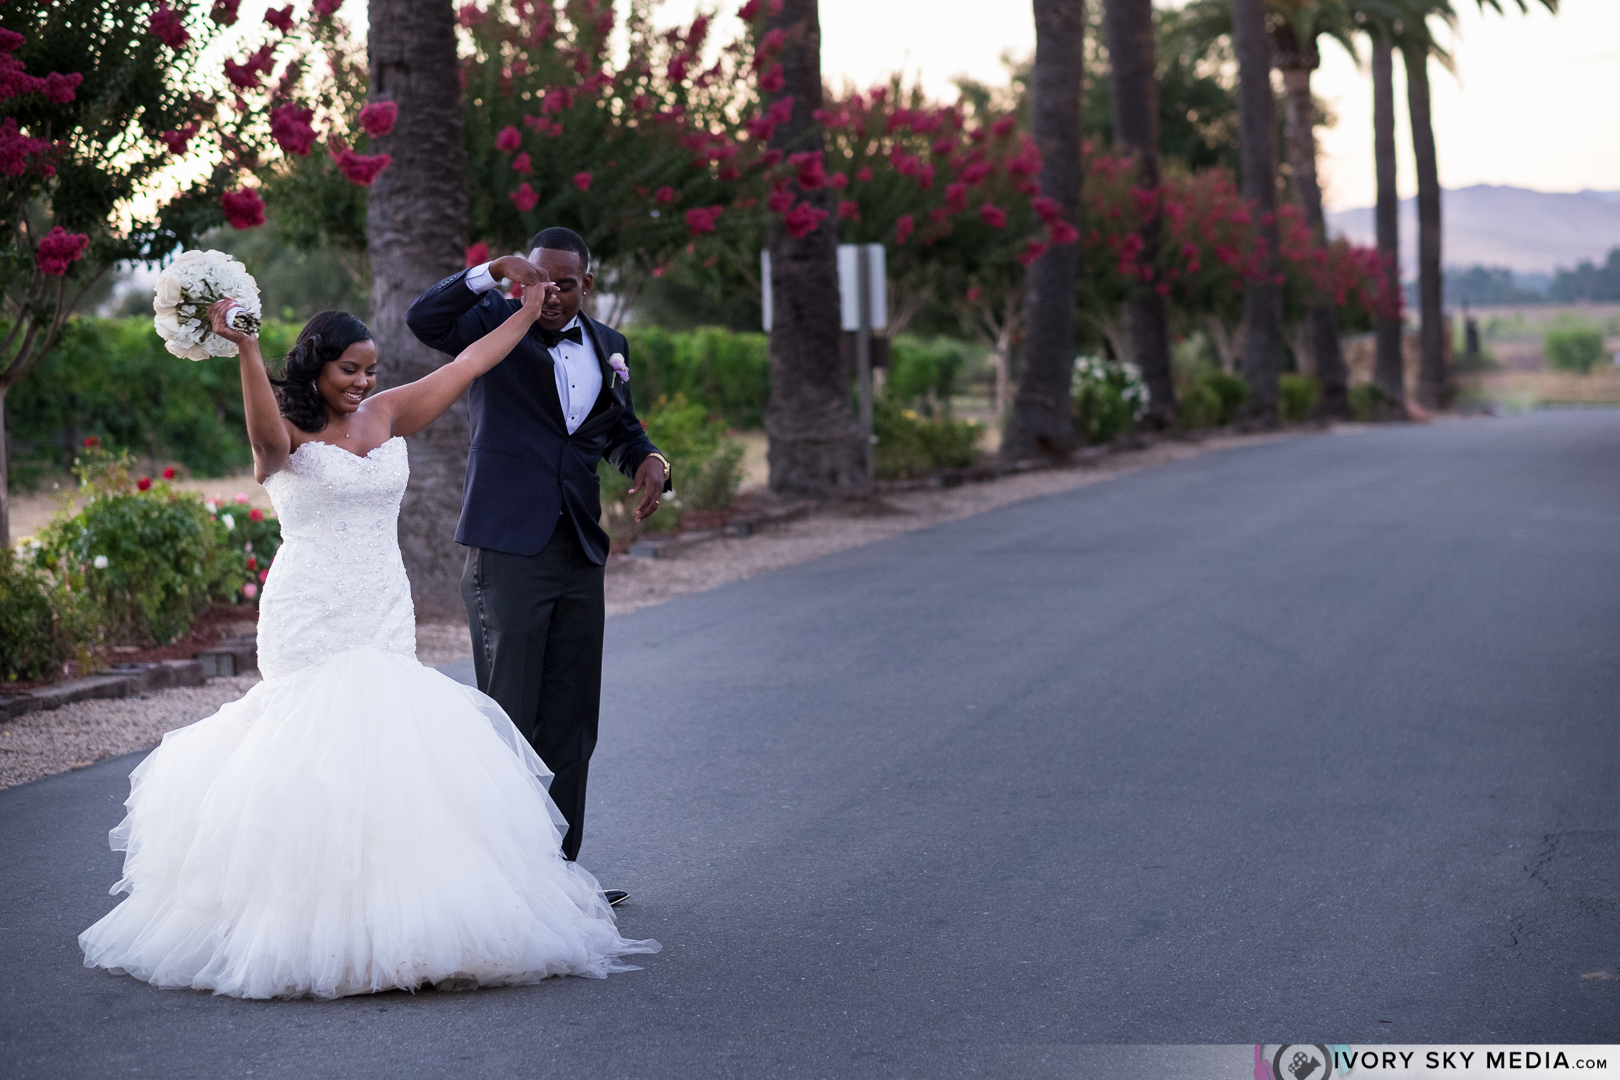 Dancing outside their vineyard wedding venue, while guest anticipate their grand entrance.